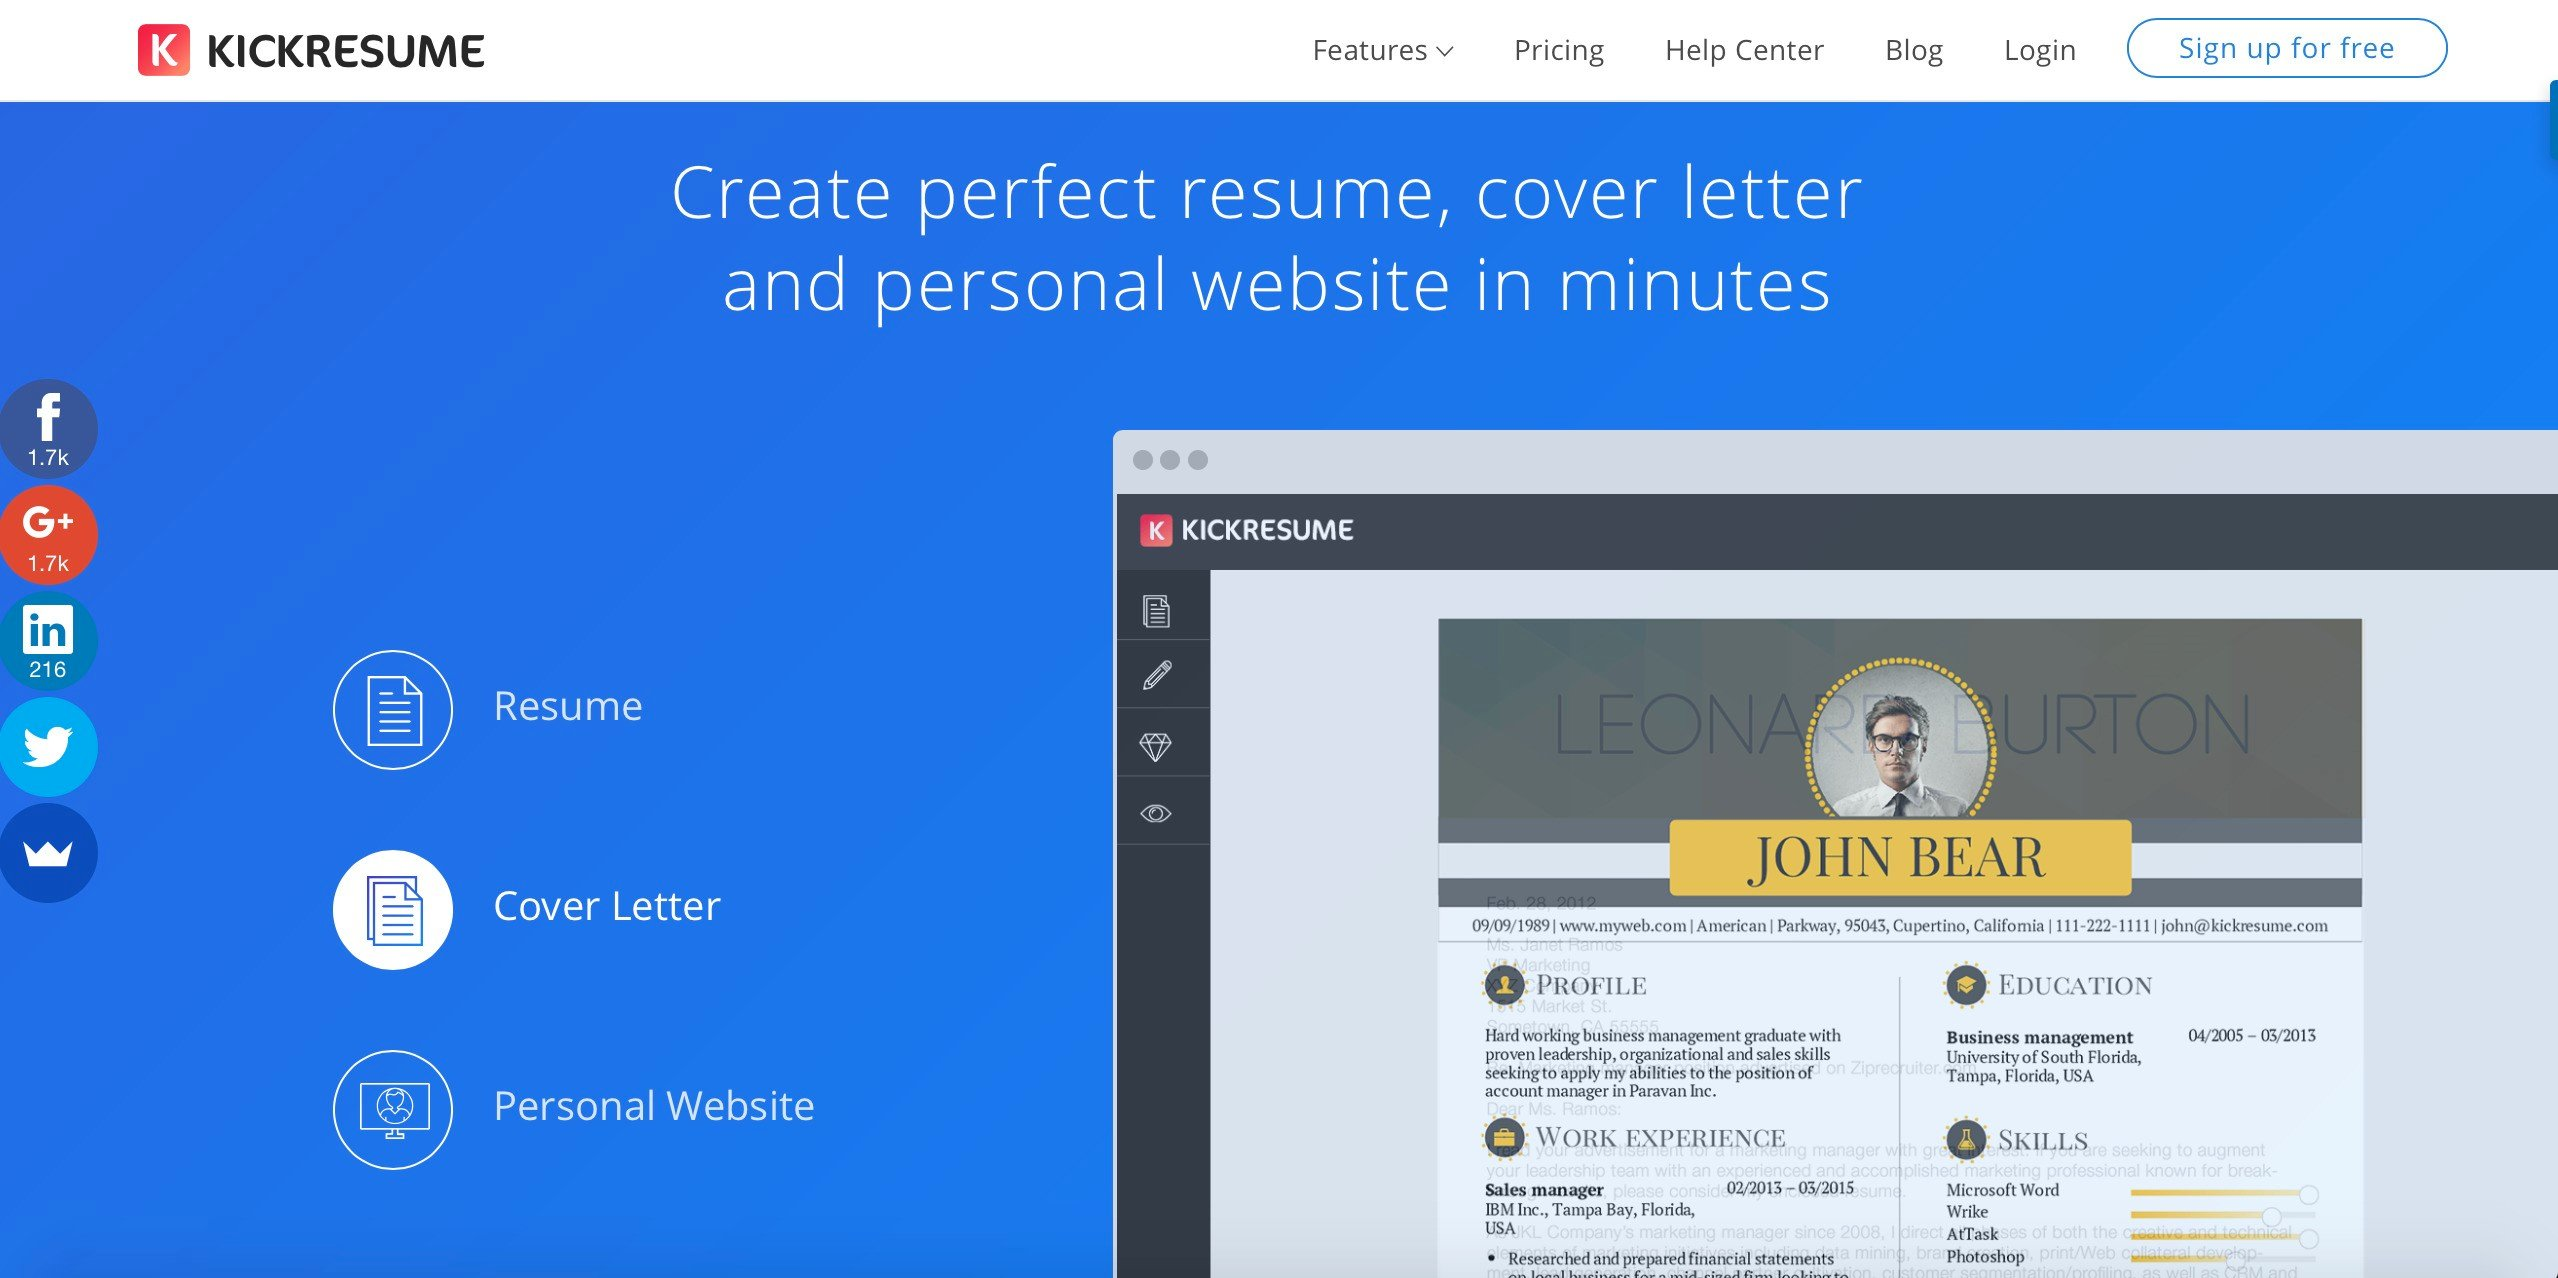 create perfect resume cover letter or personal website in minutes and land your dream job